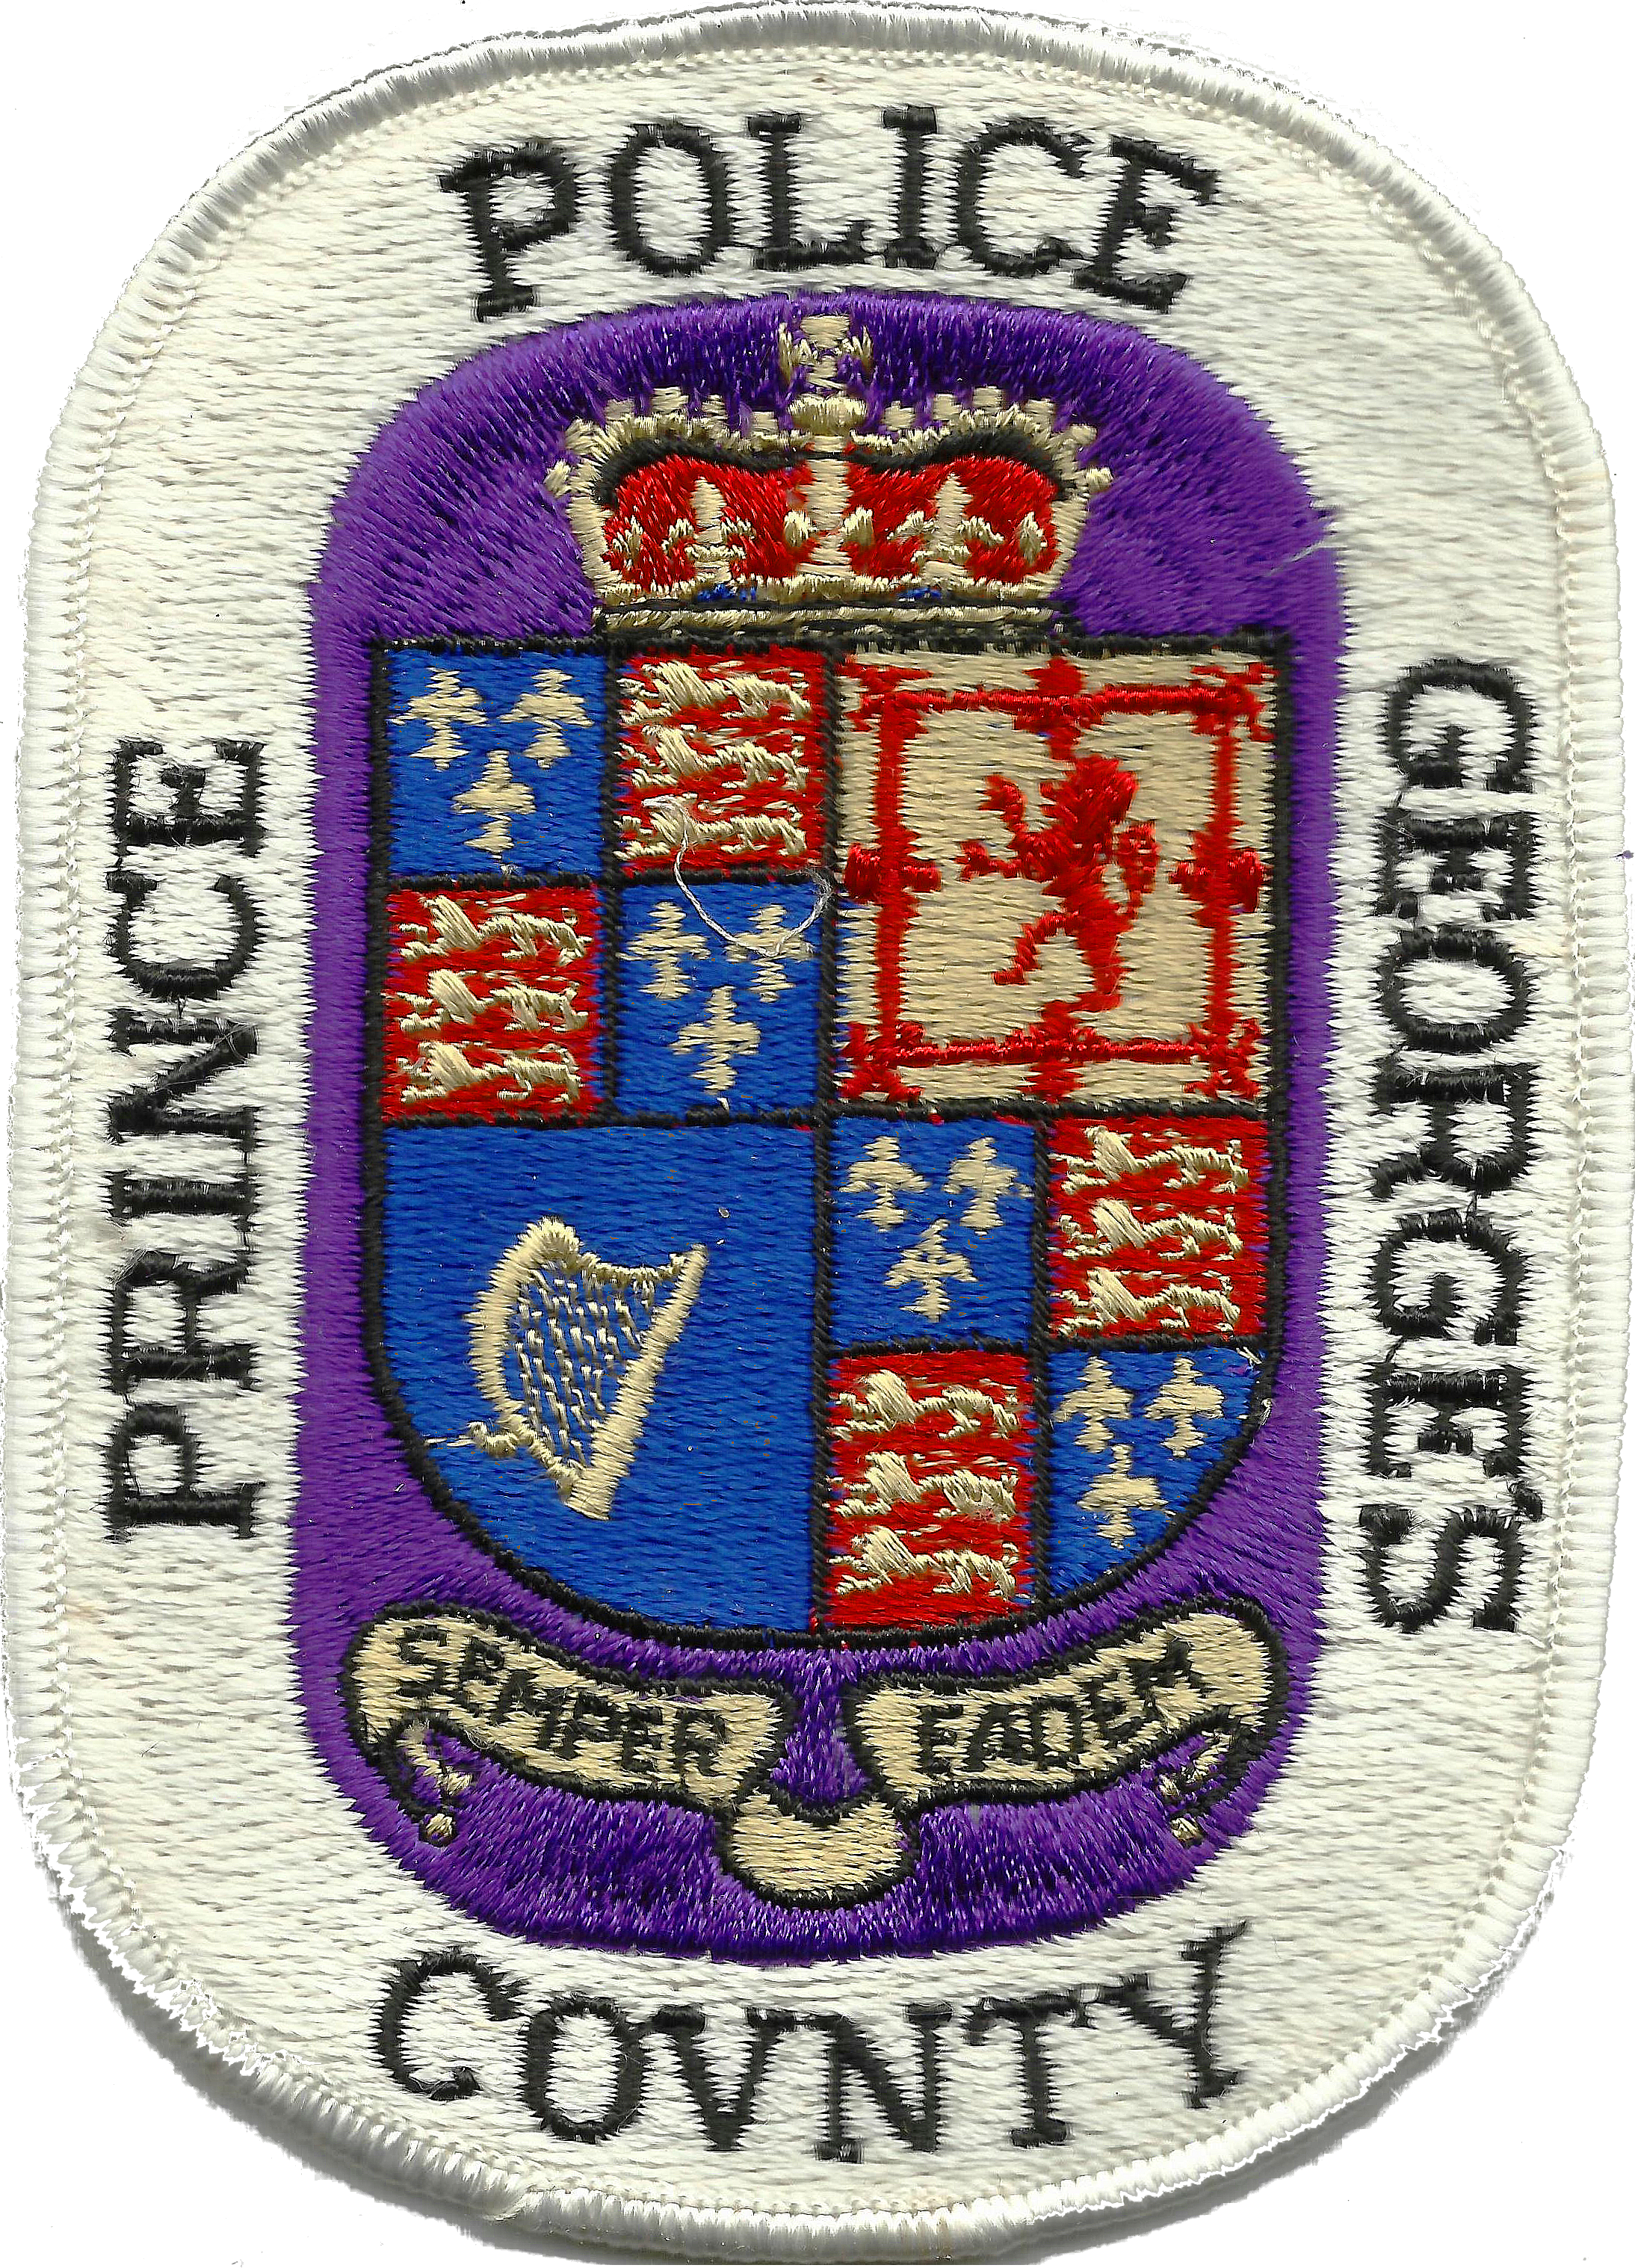 Prince George's County Police Department - Wikipedia